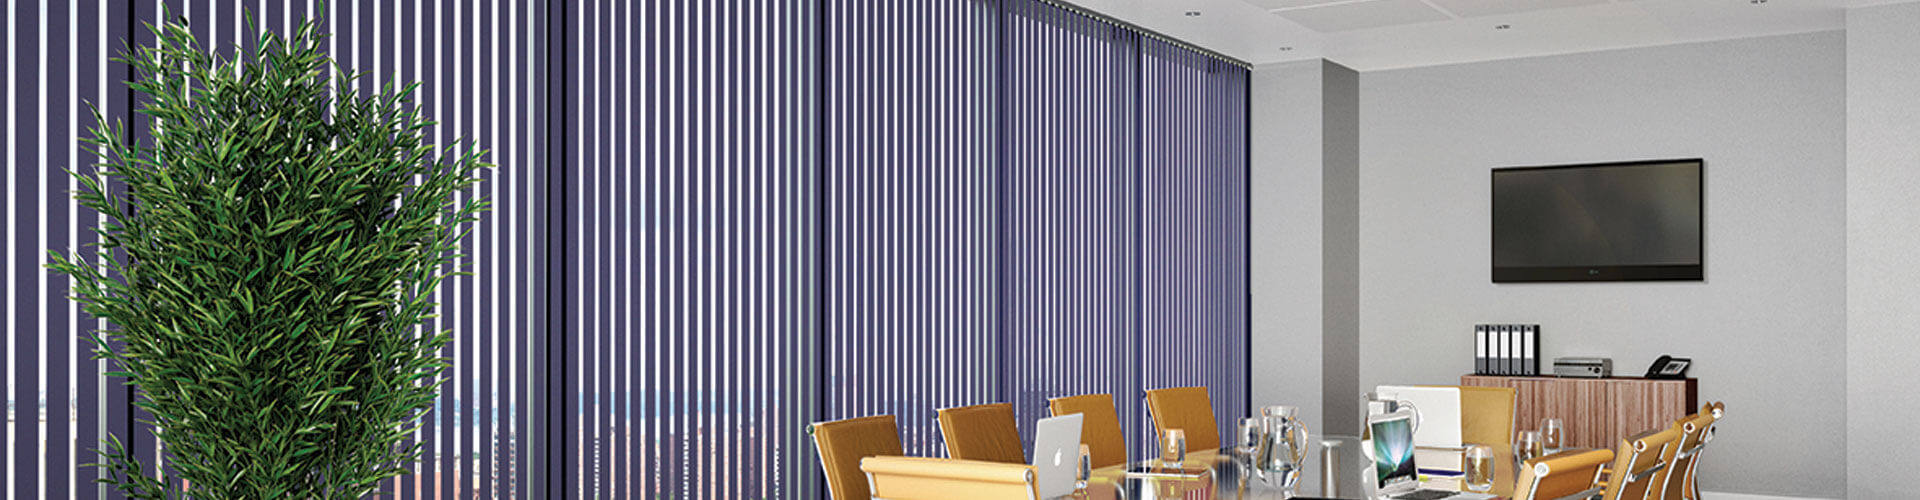 Commercial vertical blinds hero image